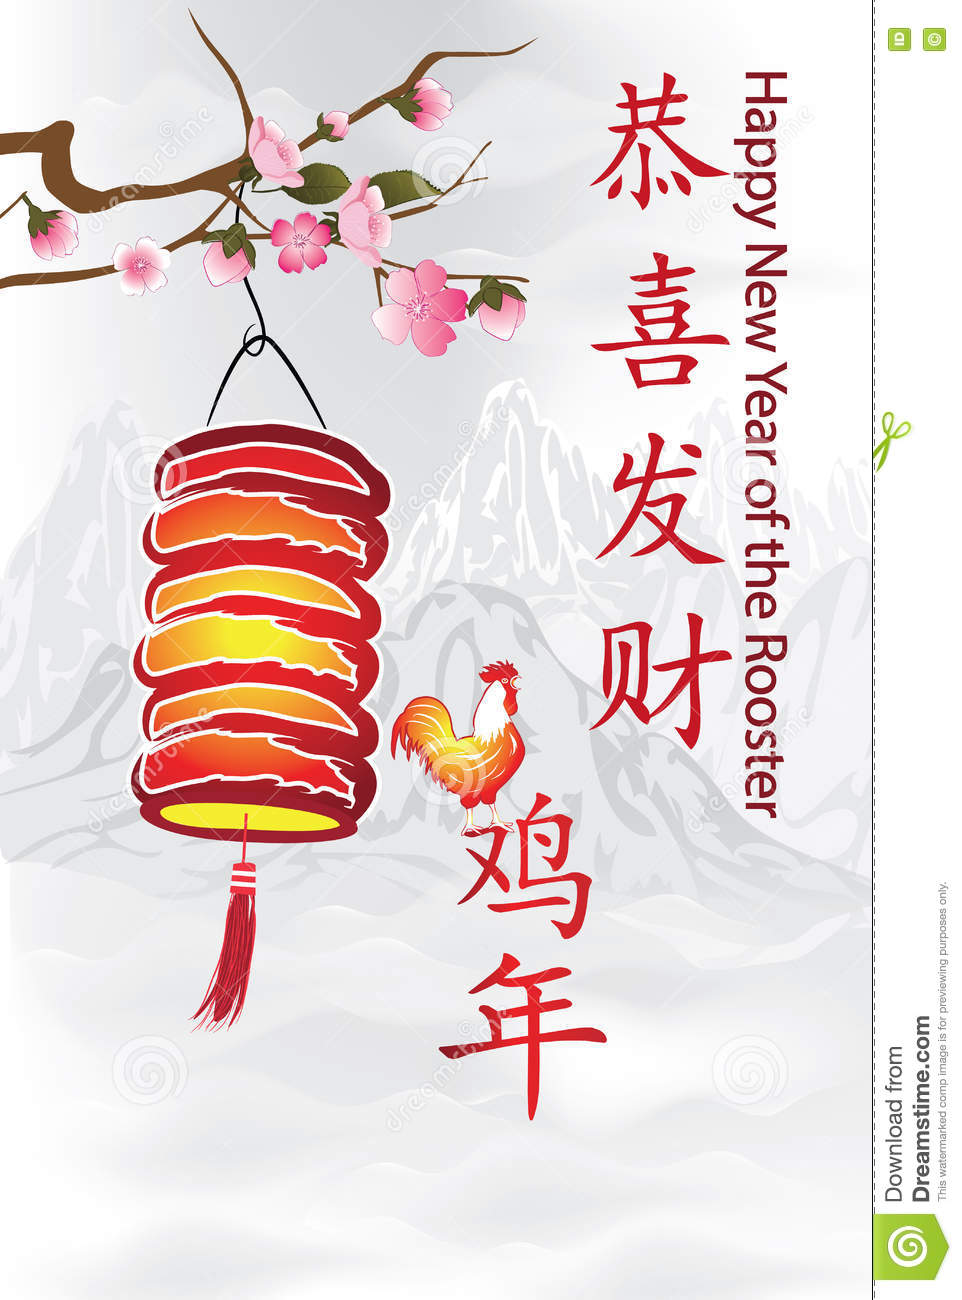 New year 2017 greeting pictures year of rooster happy chinese new year - 2017 Card Chinese Greeting Lantern New Paper Rooster Year